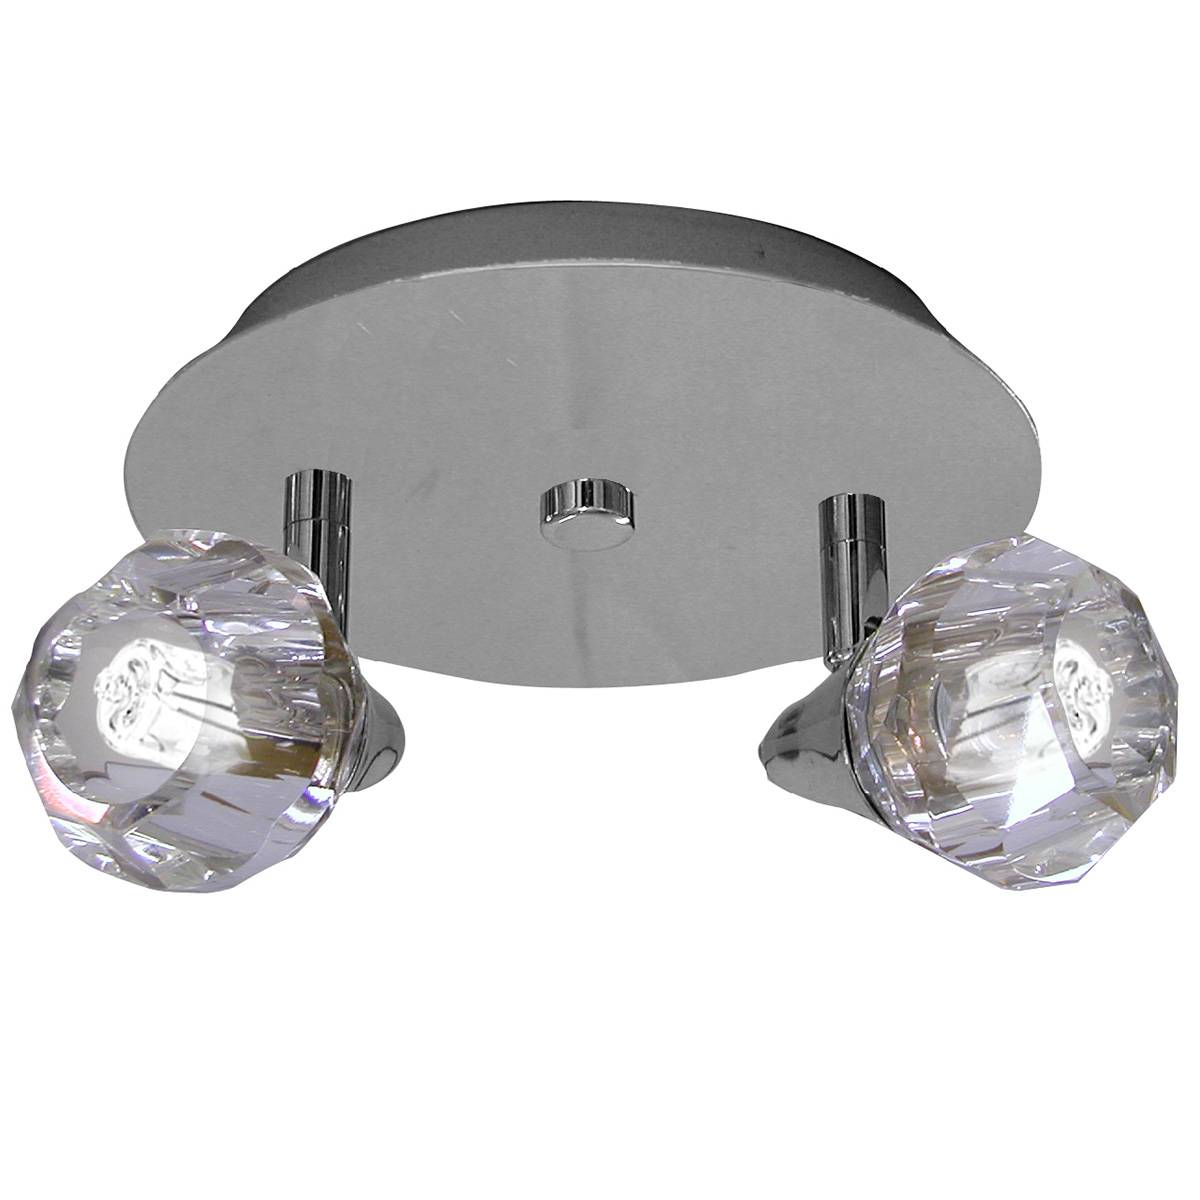 Spot Base Diamont Circular Aco Regulavel Base G-9 P/0 2 Lamp.Max. 35w 05 Unidades